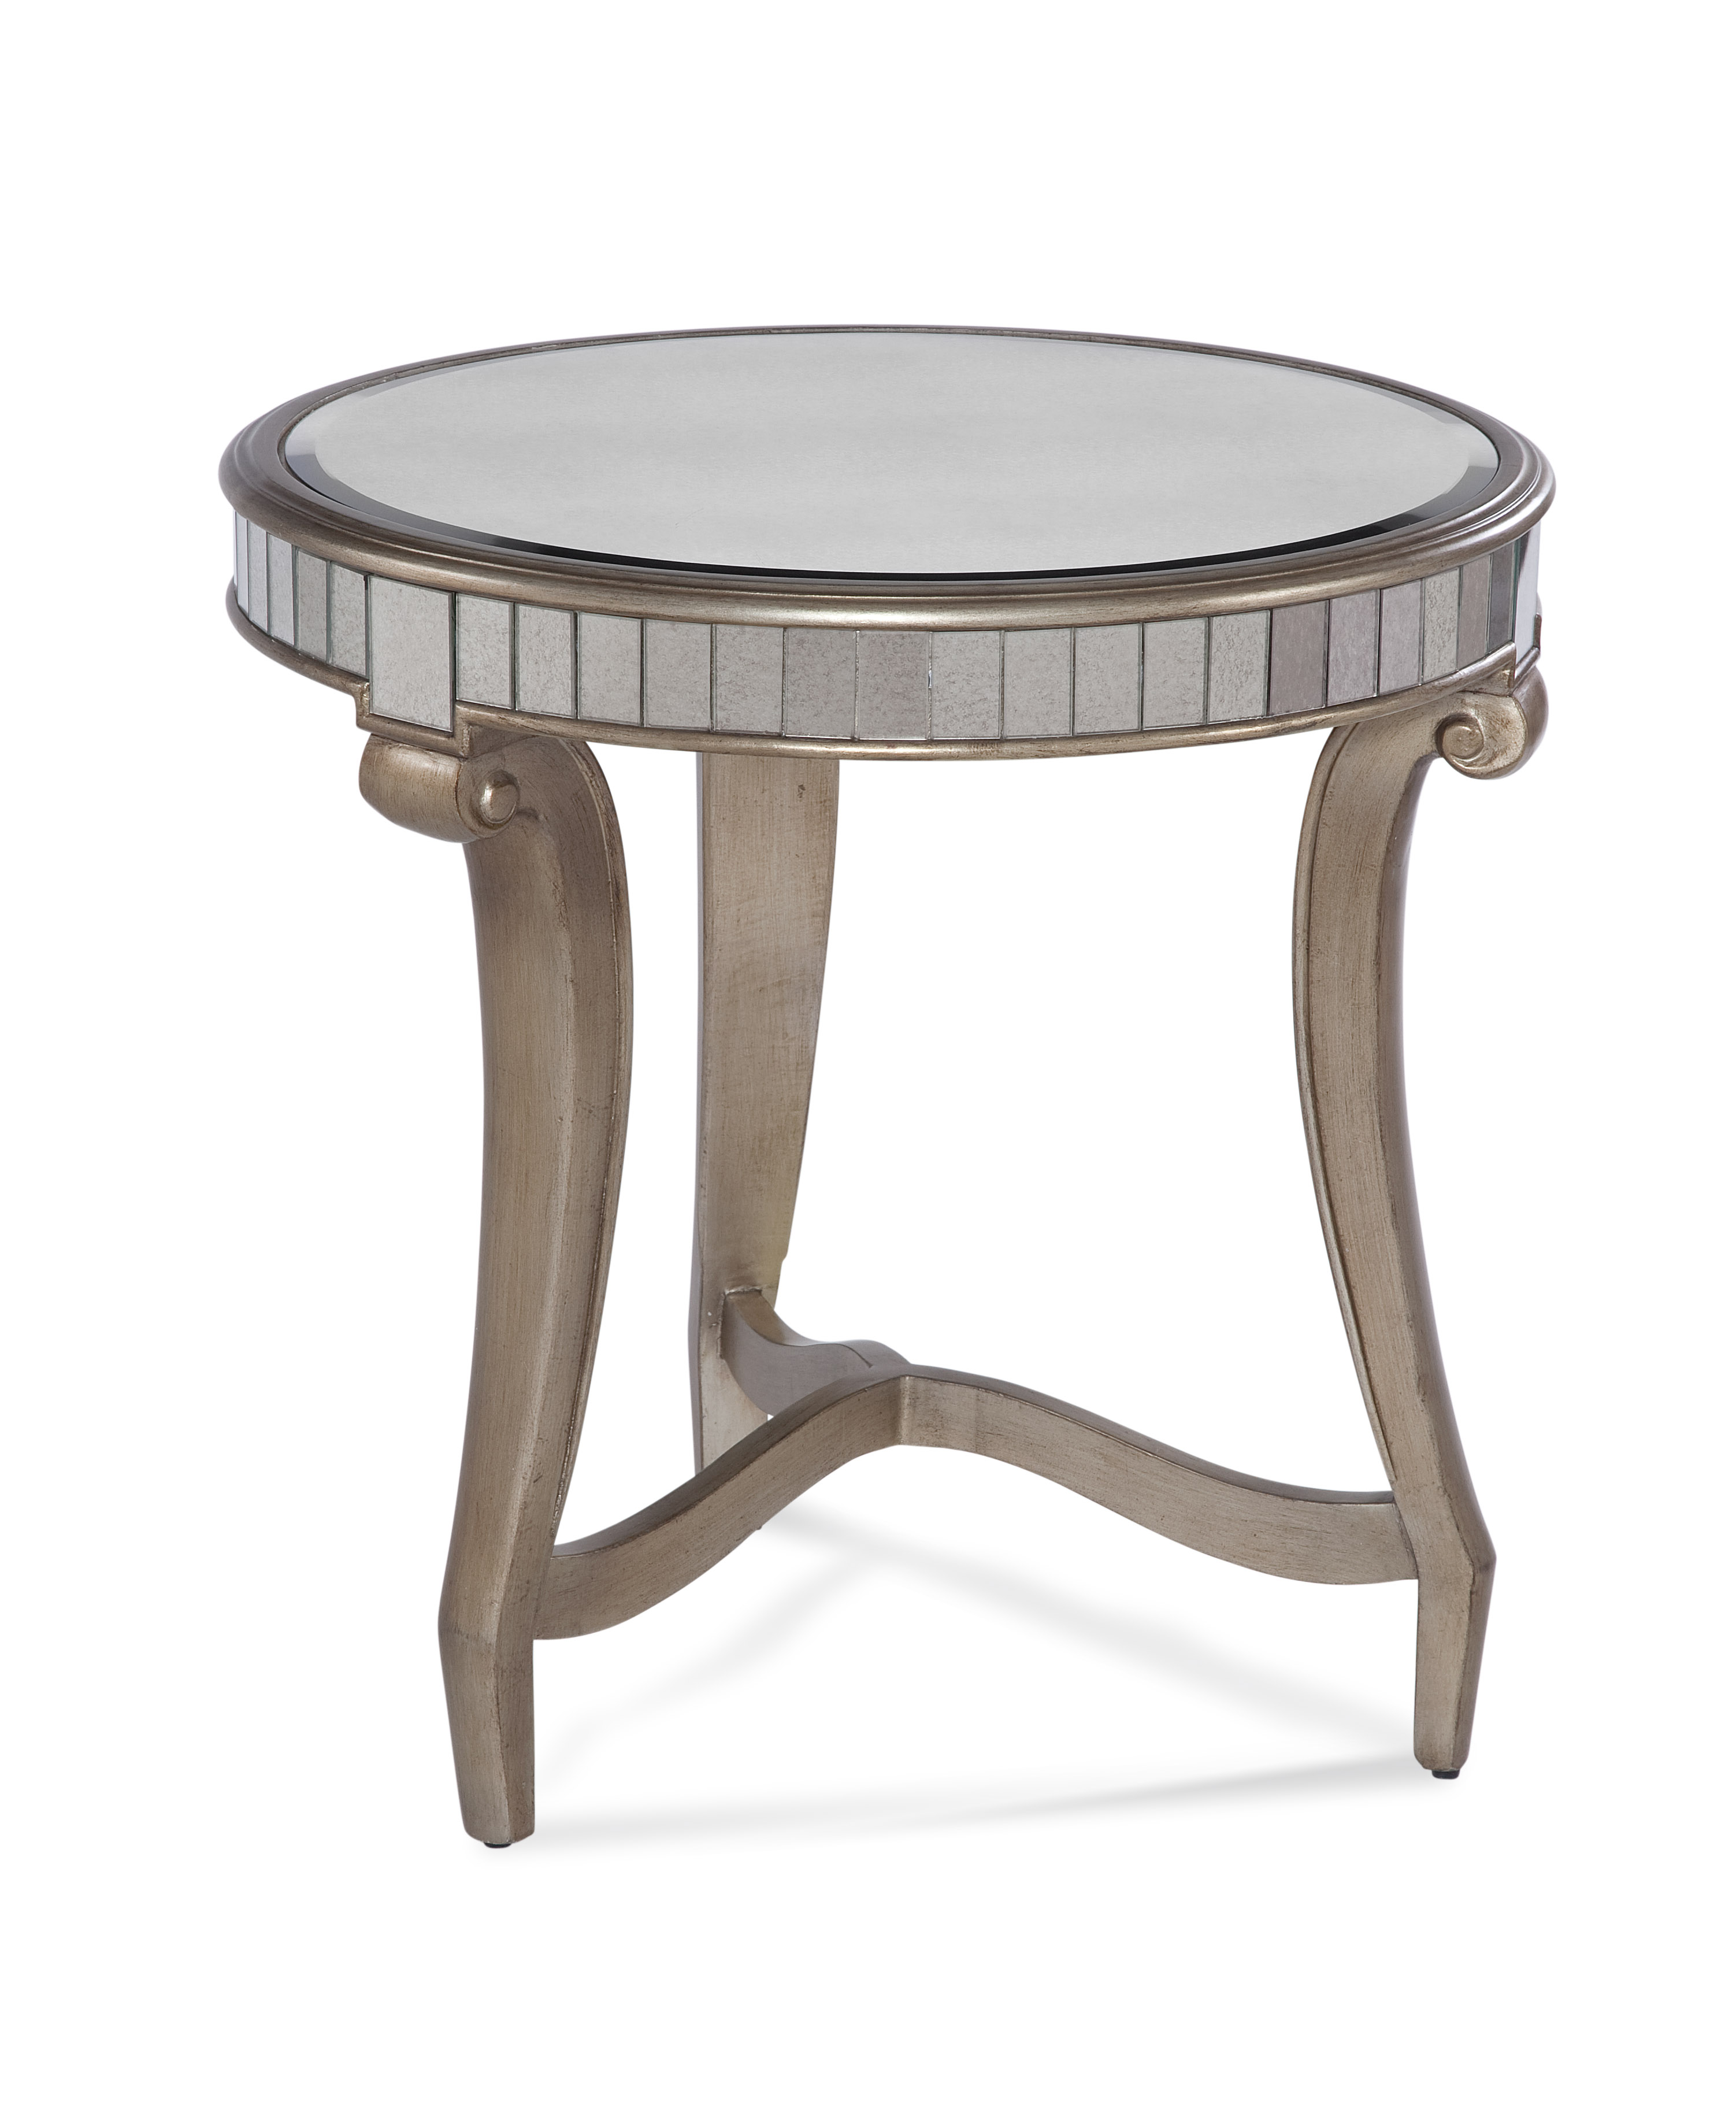 Celine Round End Table